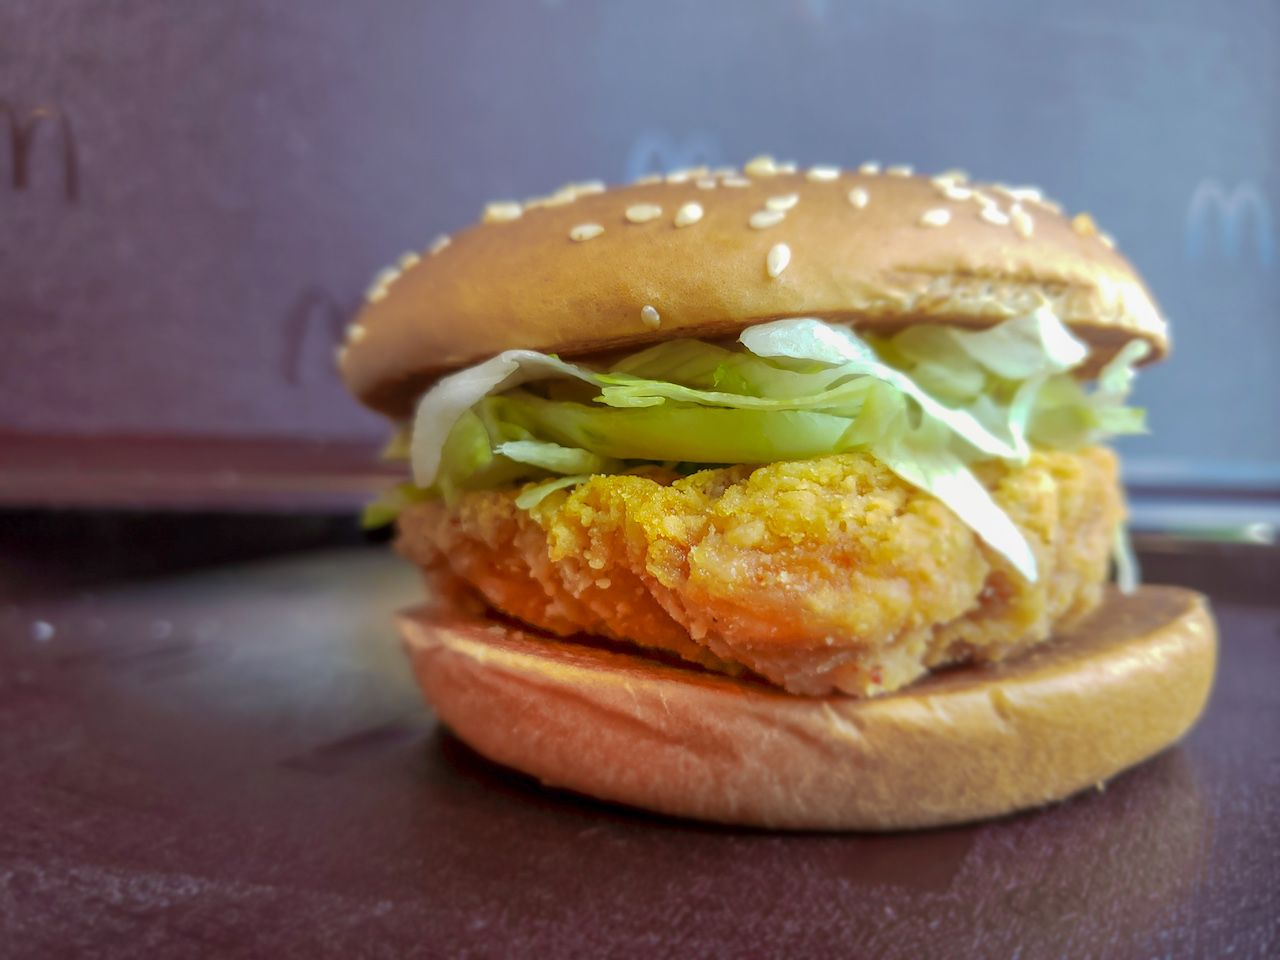 McSpicy Chicken sandwich from Hong Kong